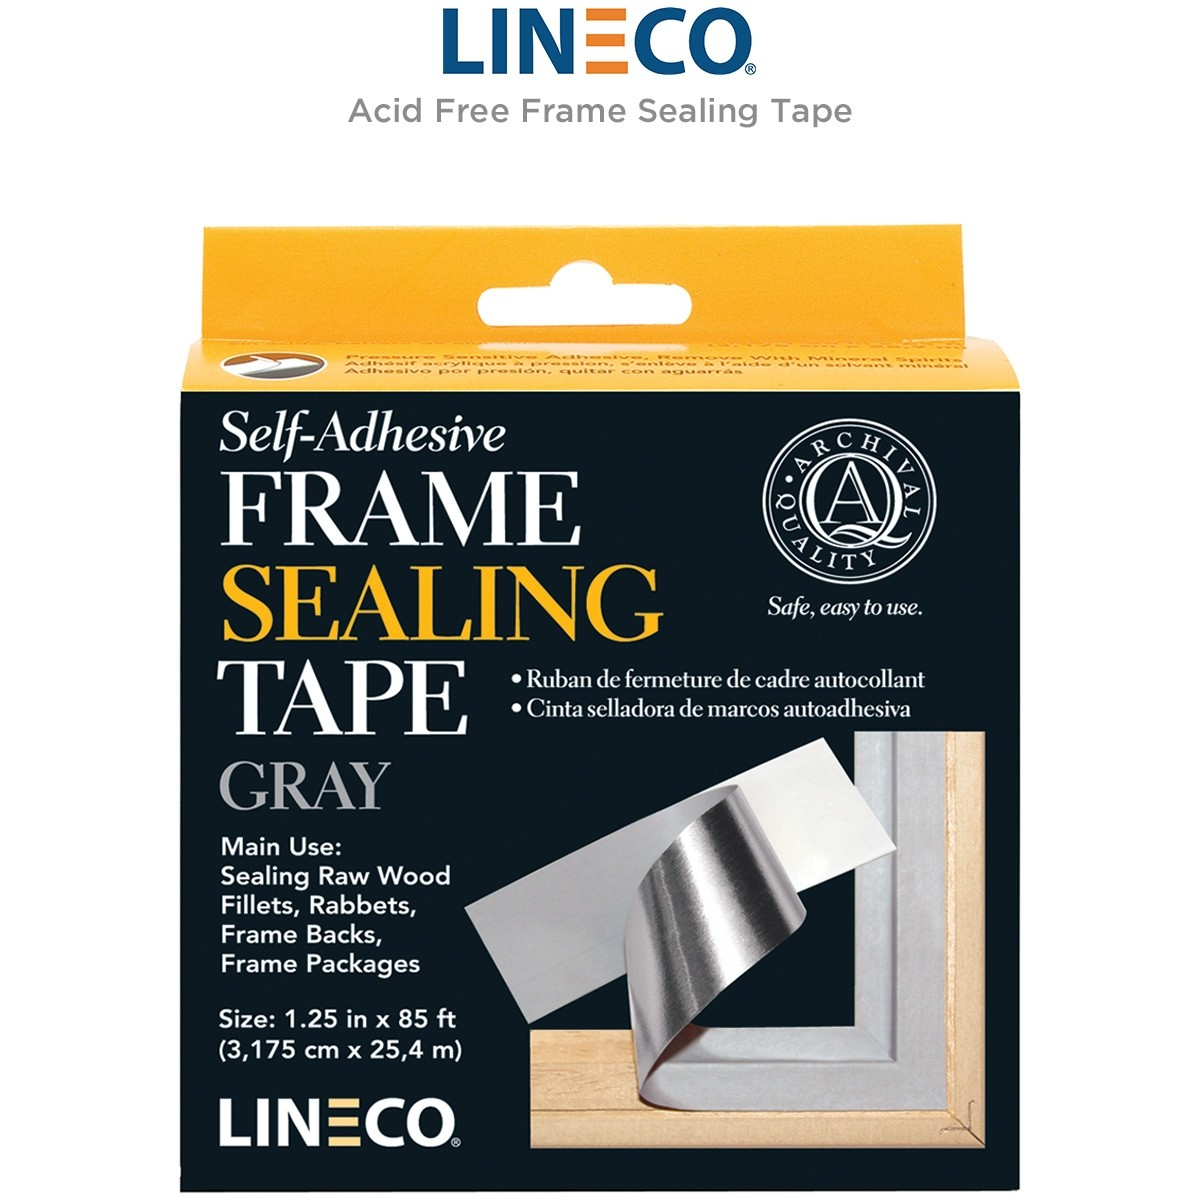 Acid Free Frame Sealing Tape